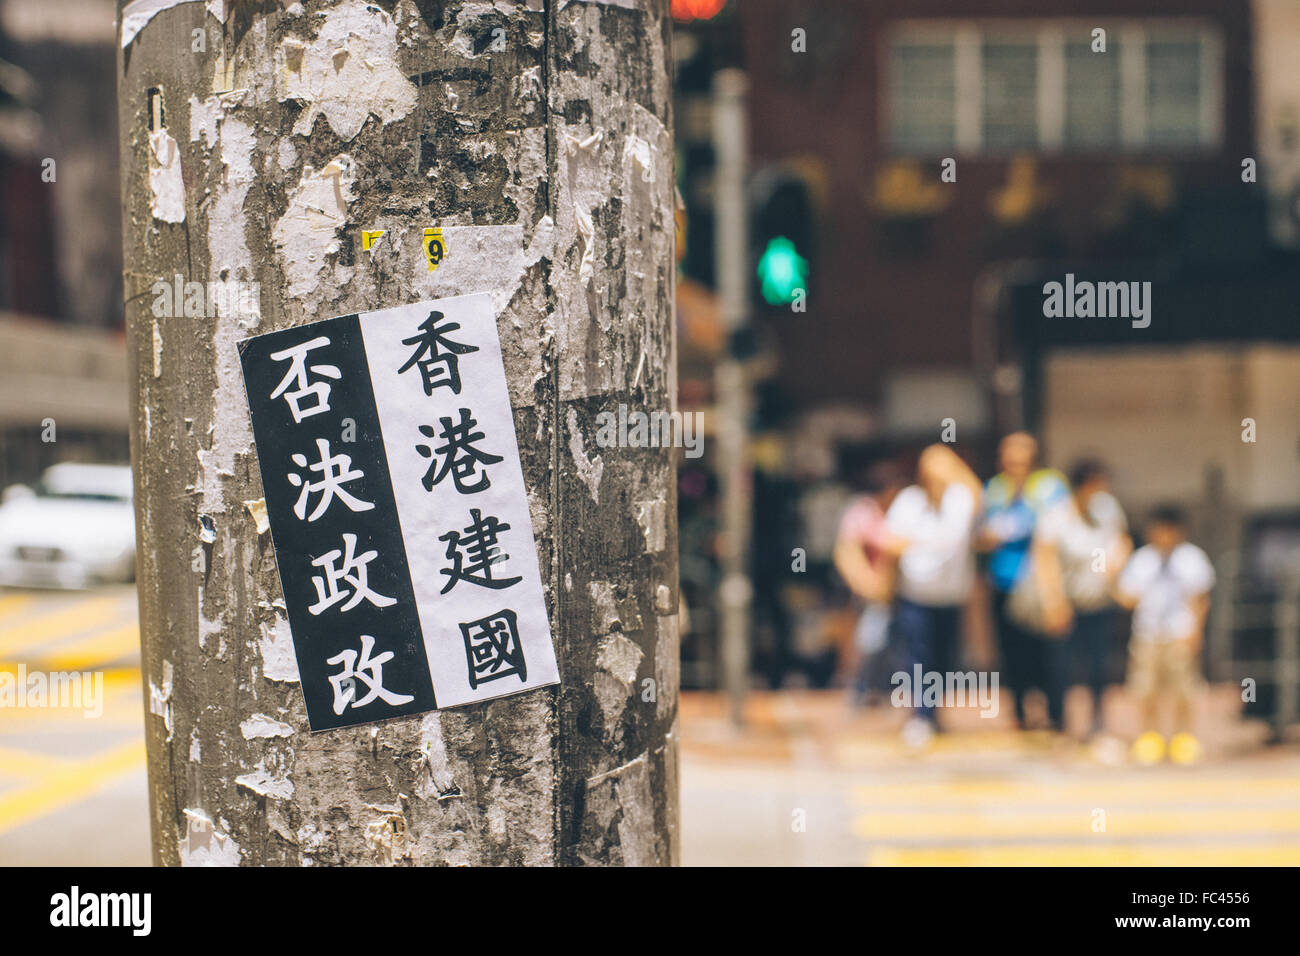 hong kong political unrest - Stock Image